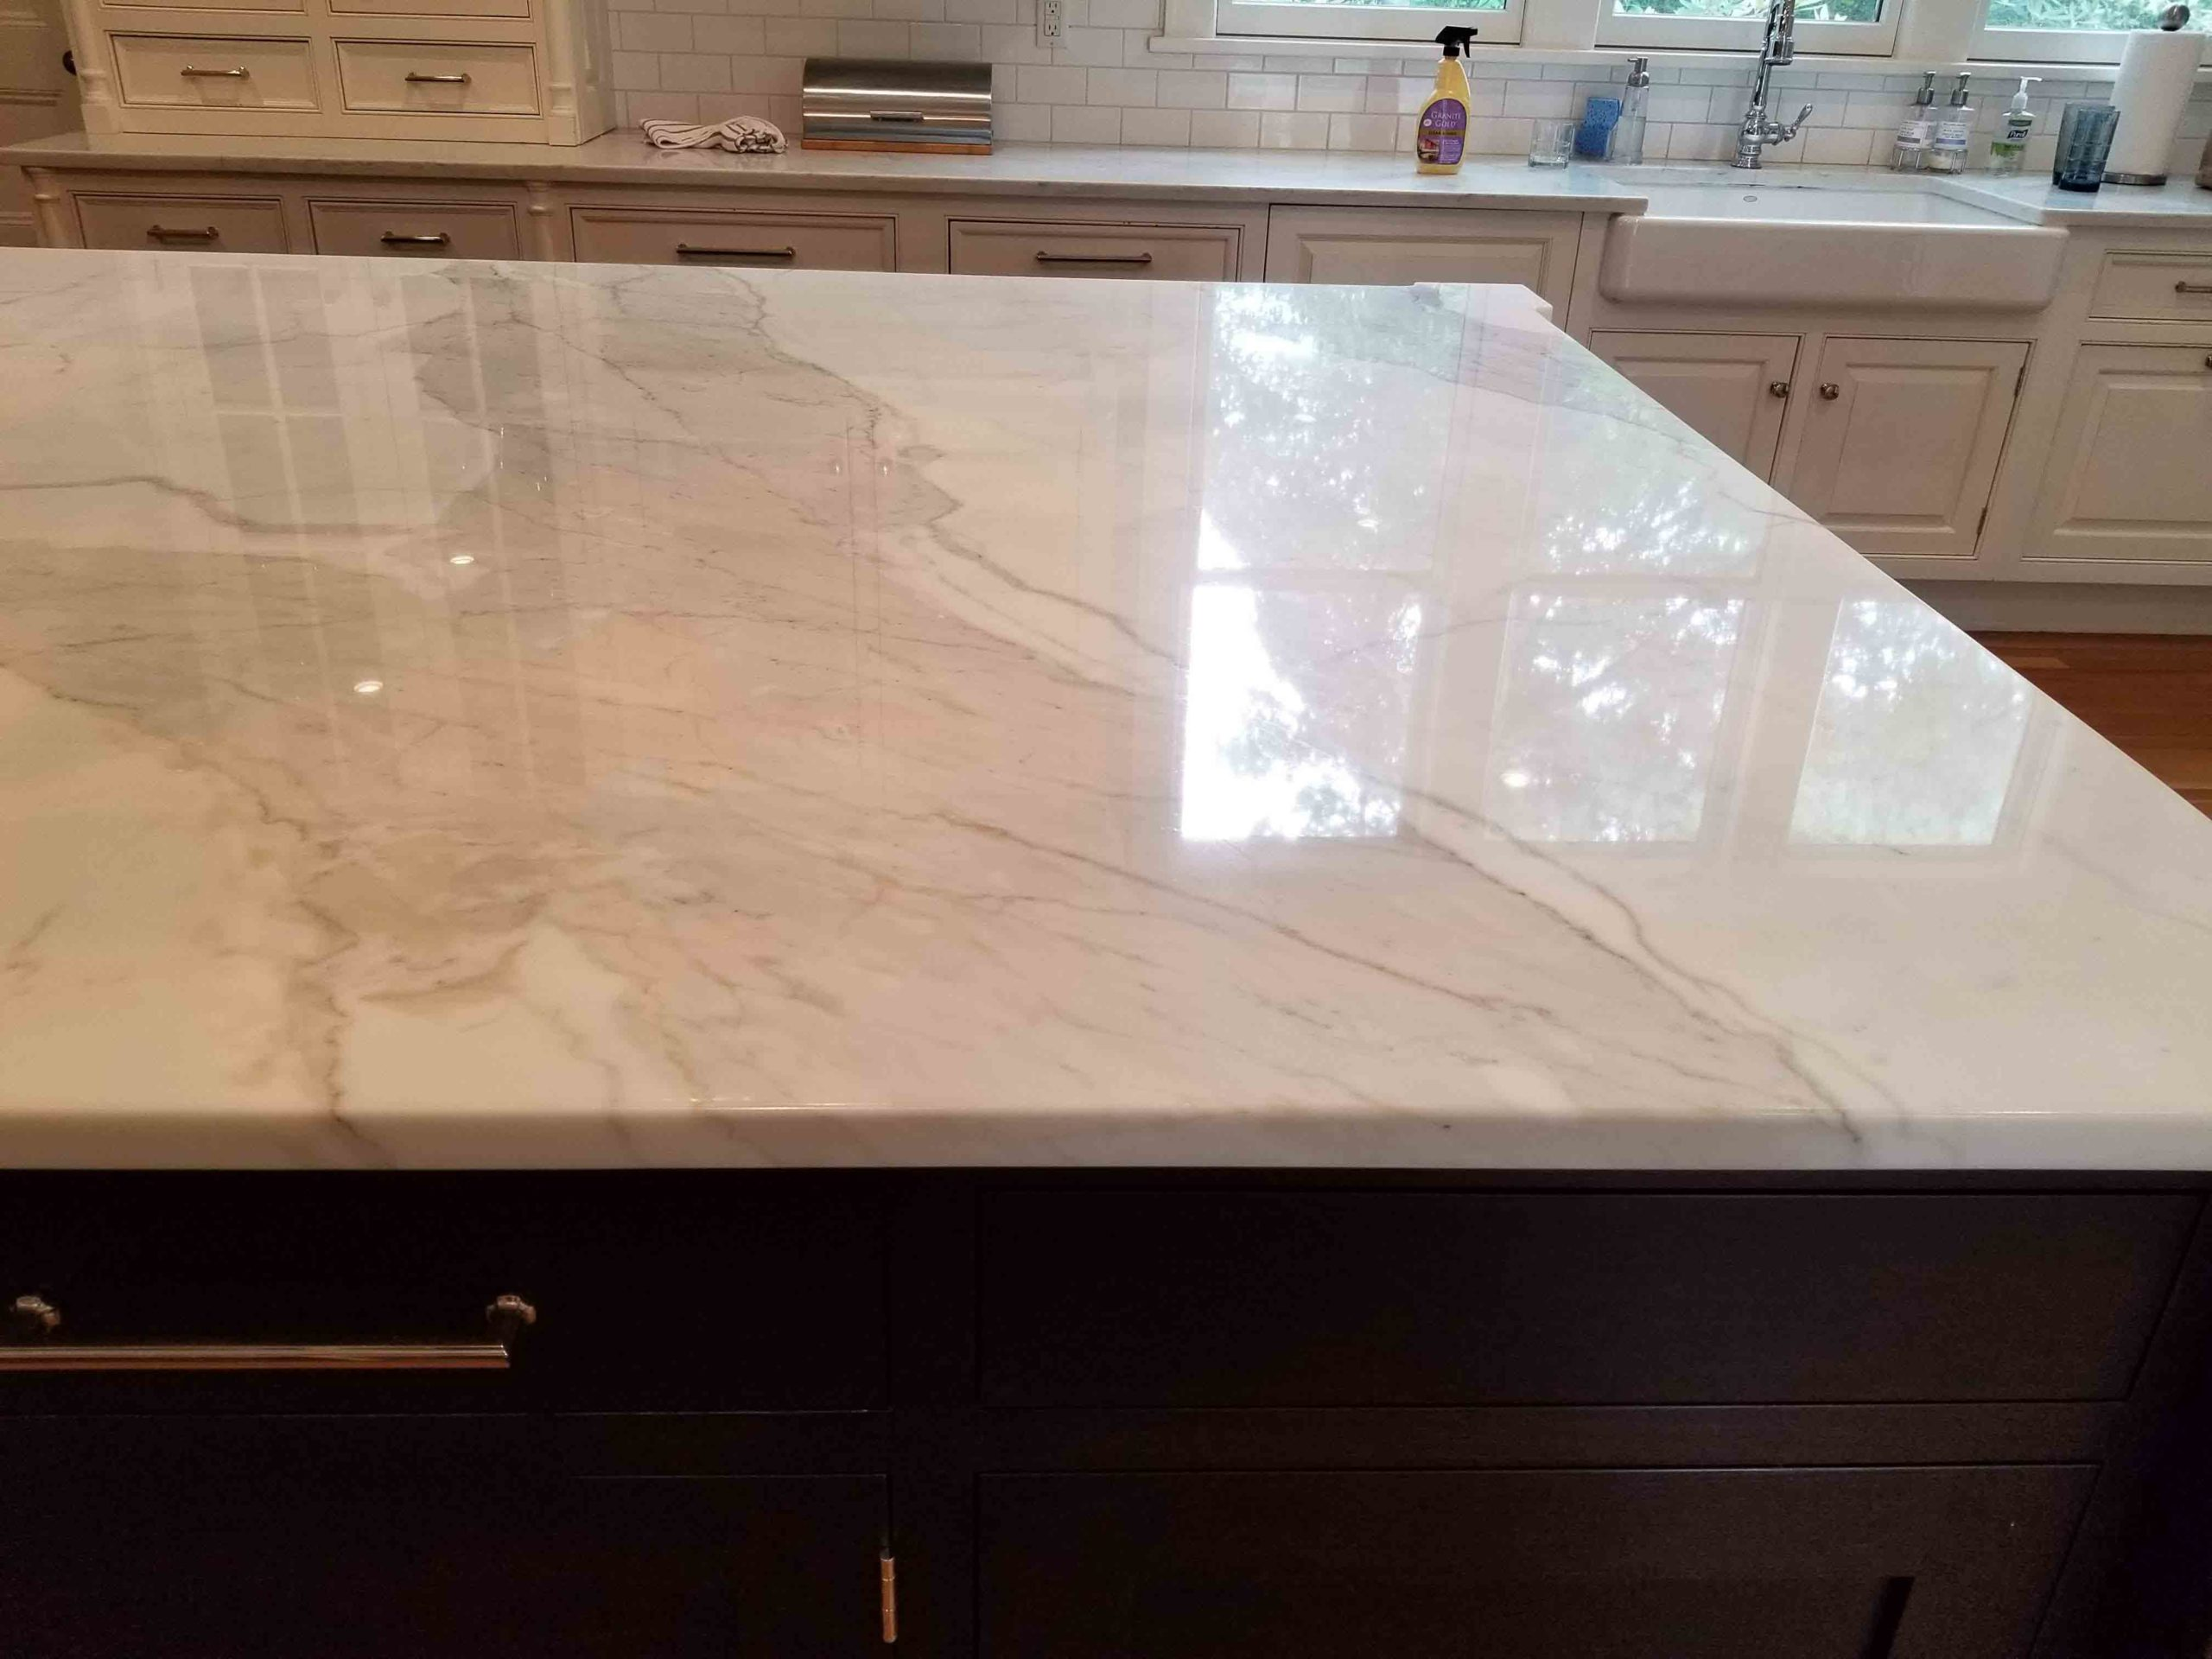 20180622 120147 scaled - We Also Install Marble